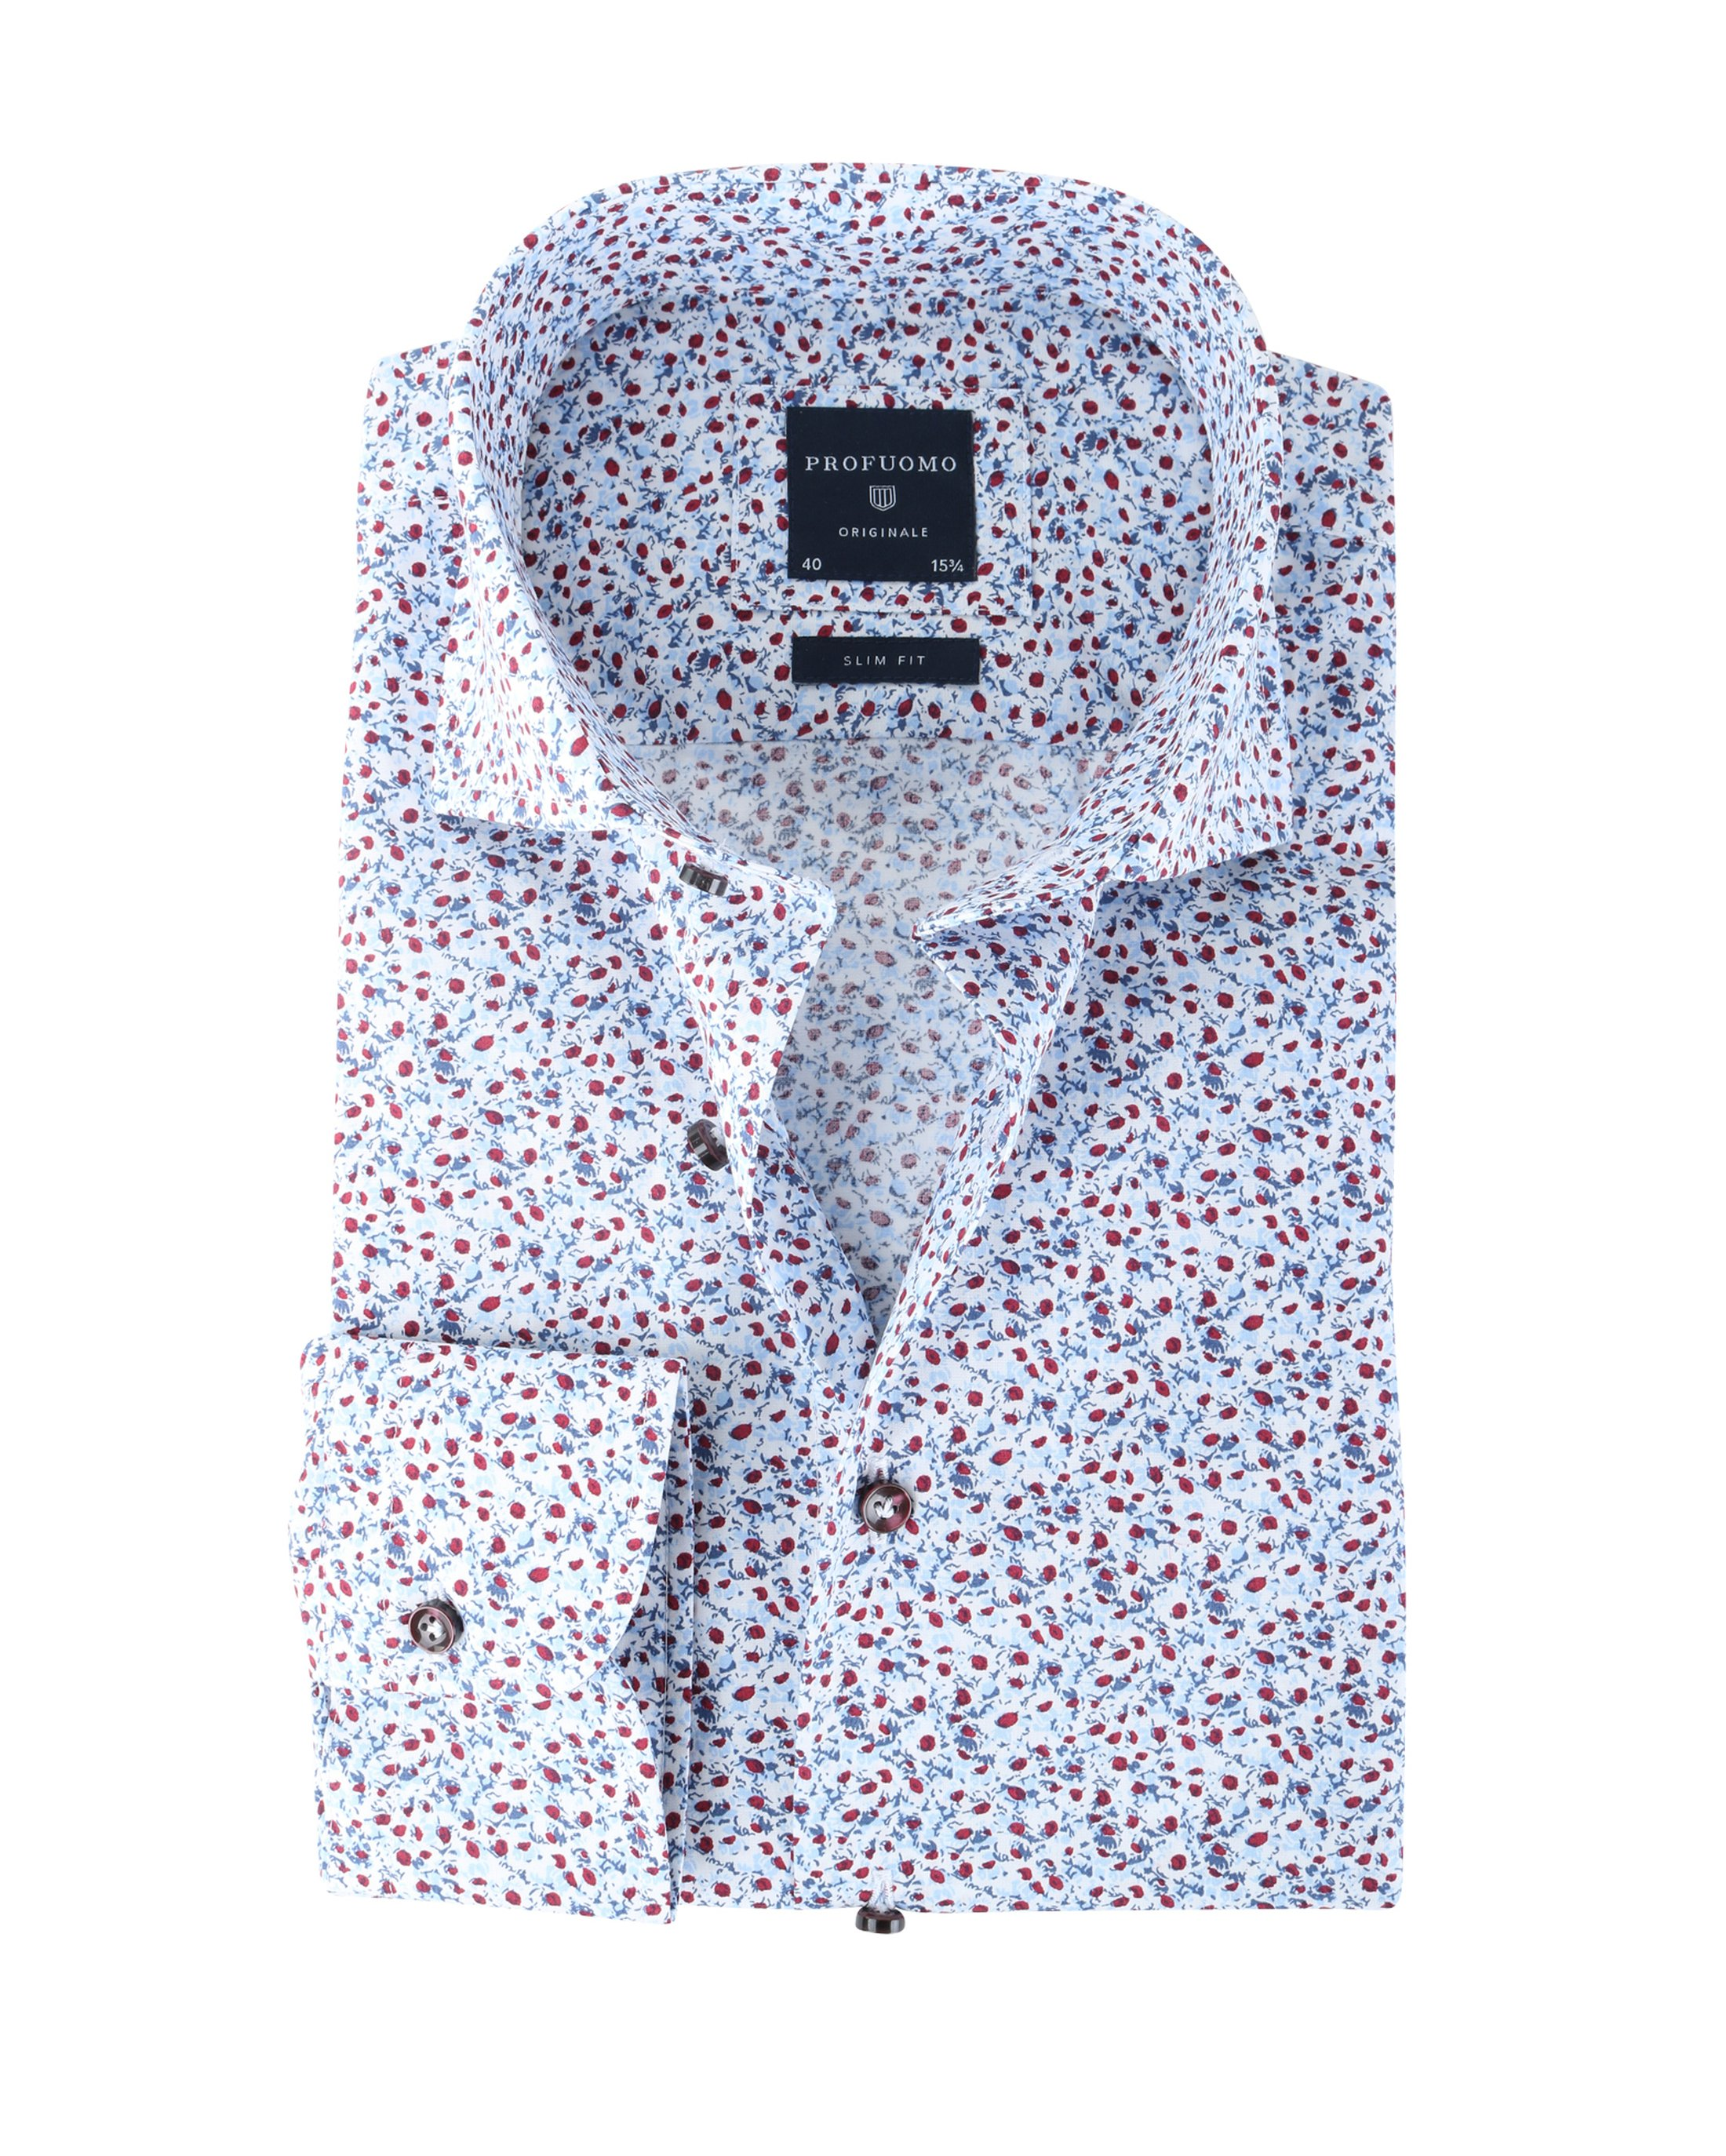 Profuomo Shirt Blue Red Flower foto 0